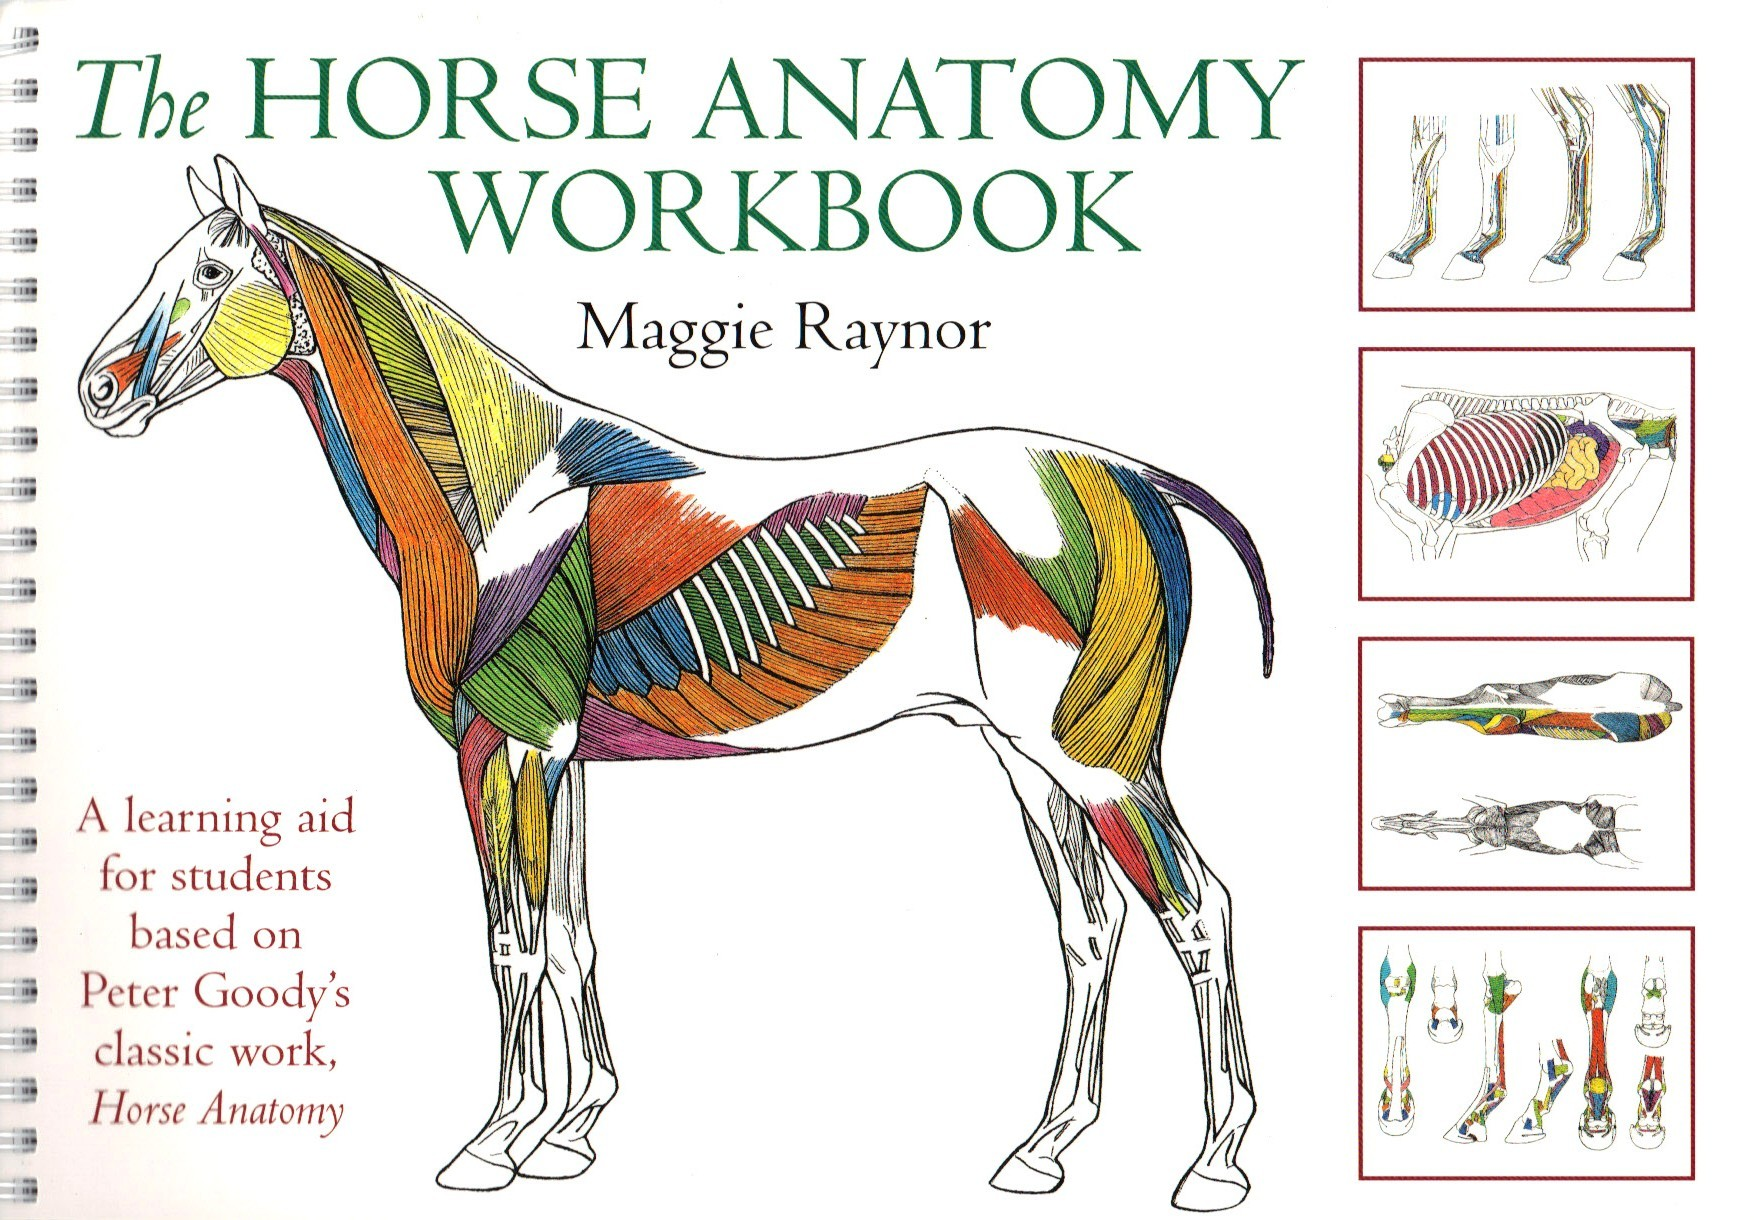 The Horse Anatomy Workbook By Maggie Raynor